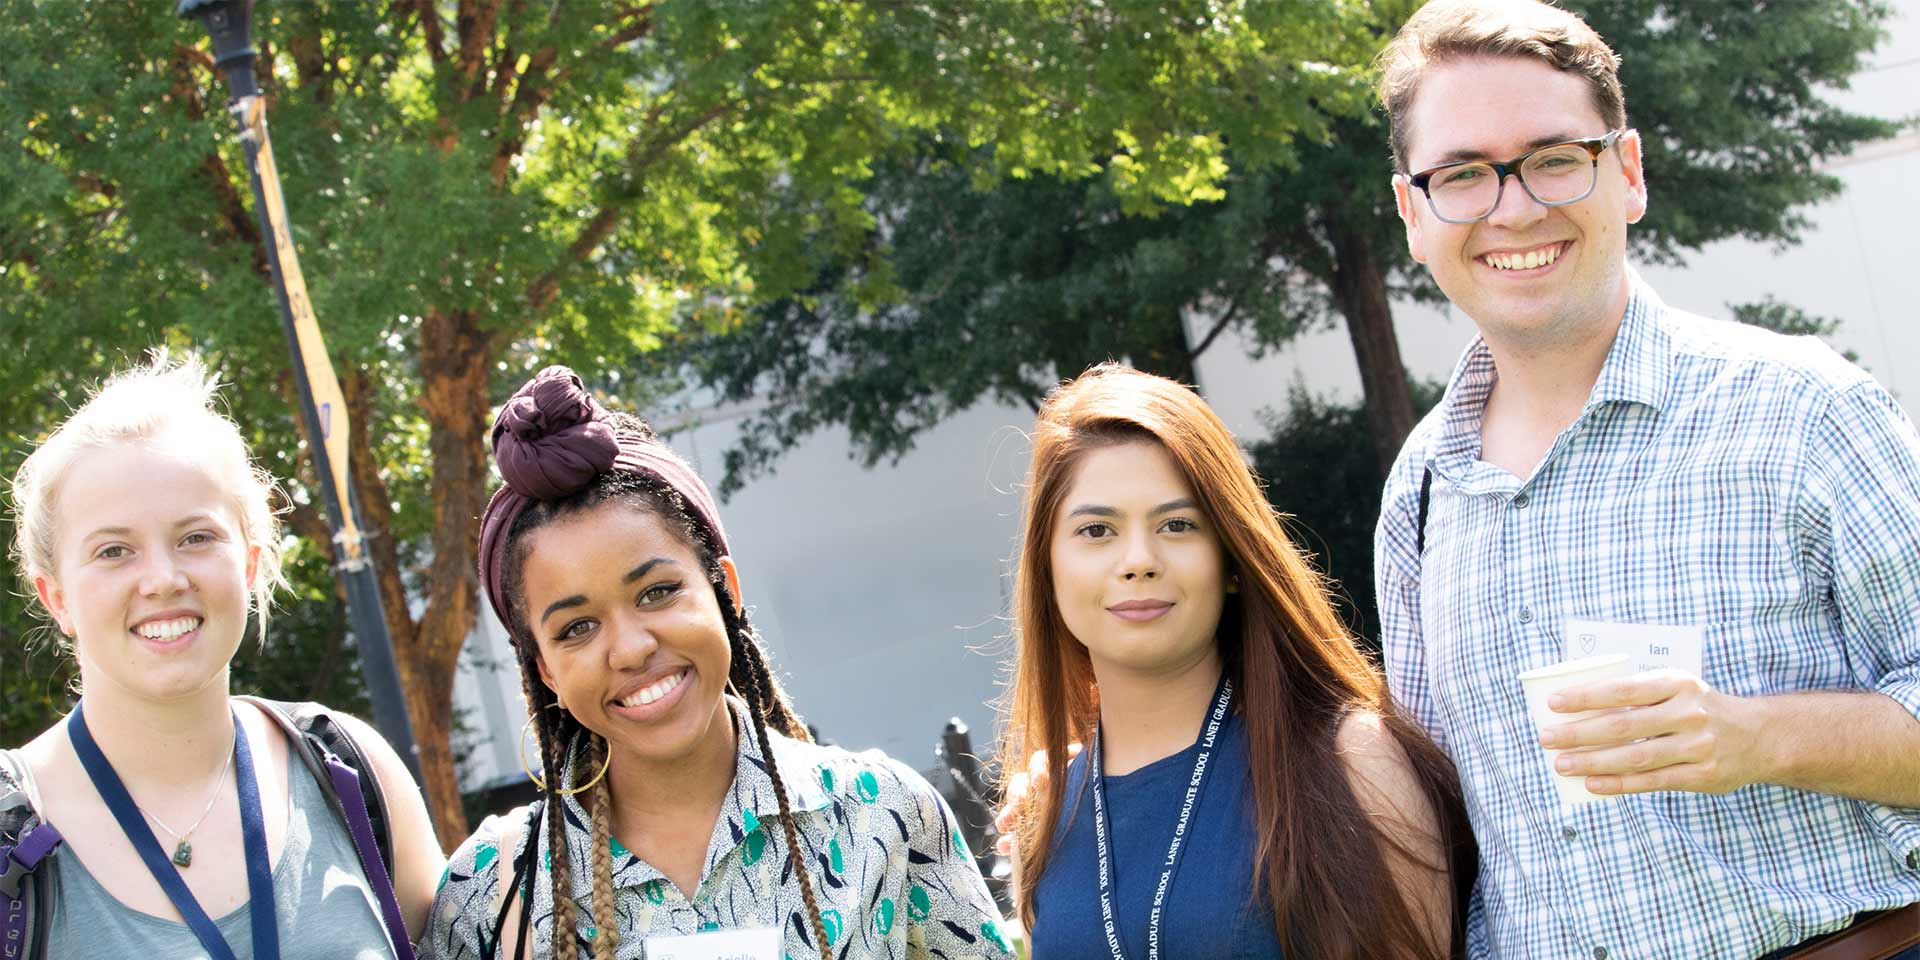 A diverse group of four students pose and smile during new student orientation.